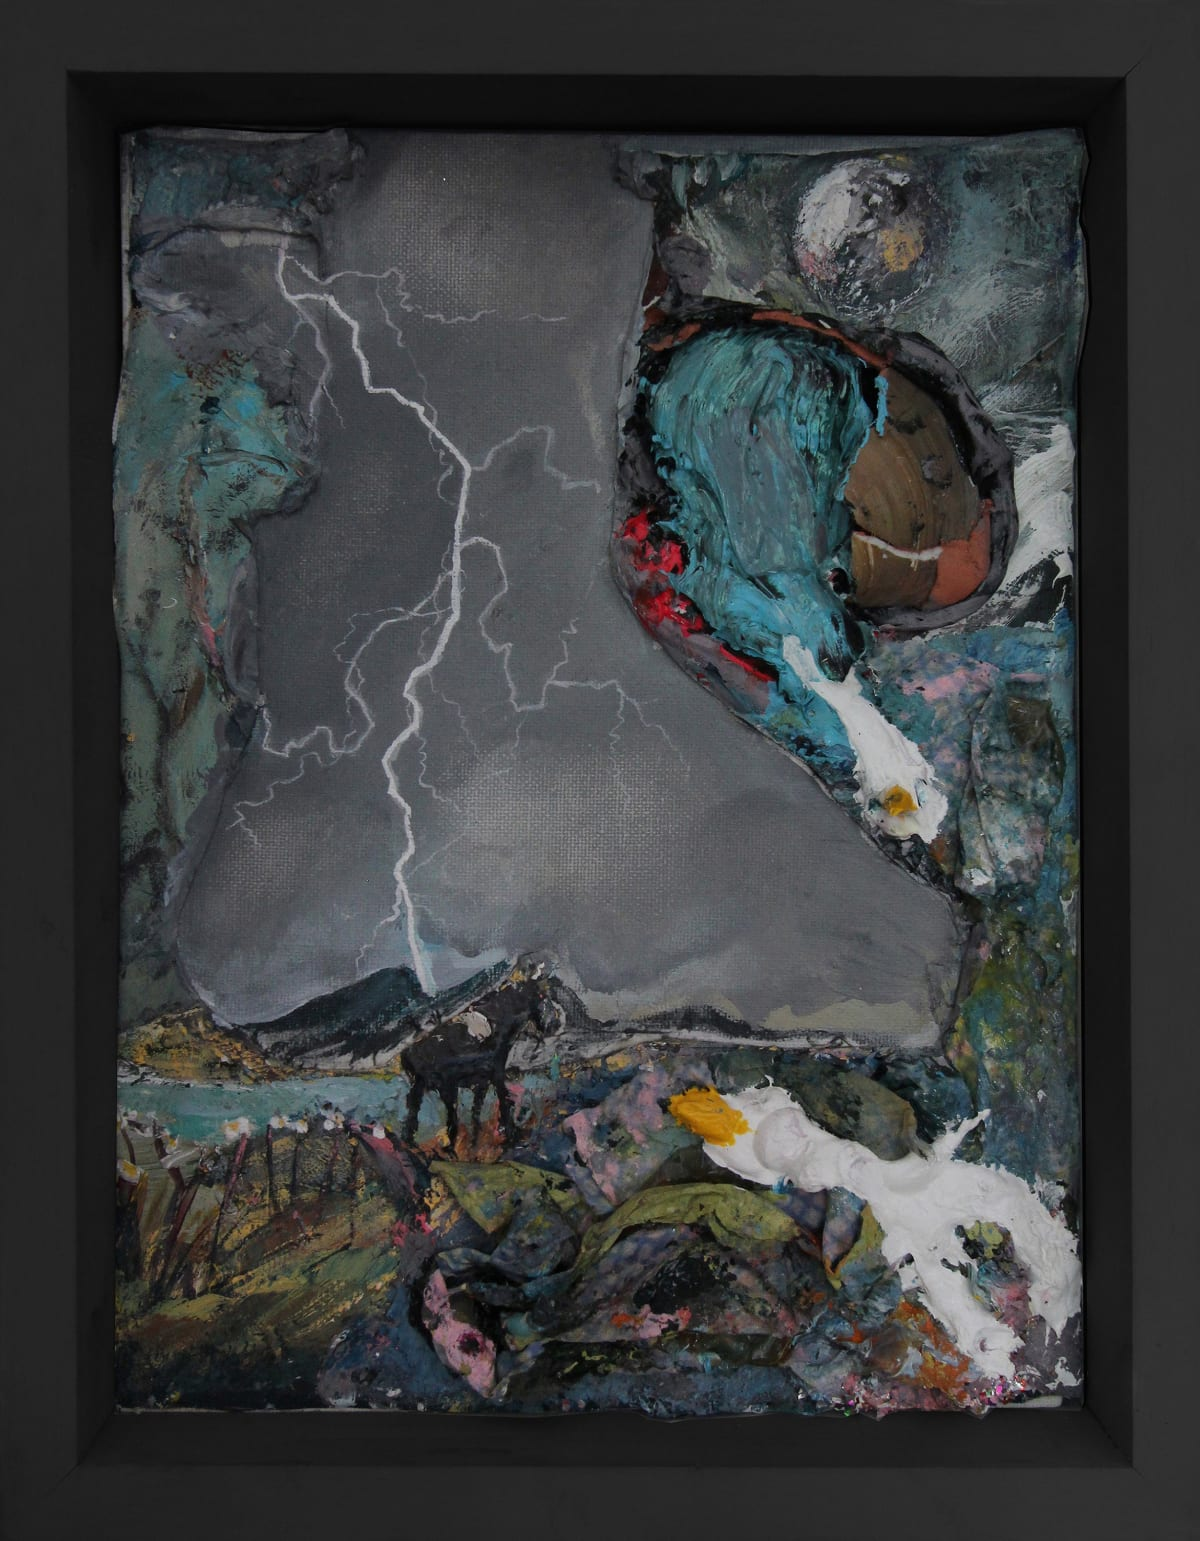 'Devil's Island', Ruth Smith on a painting by Paul Newman featured in the exhibition 'Reflections'.